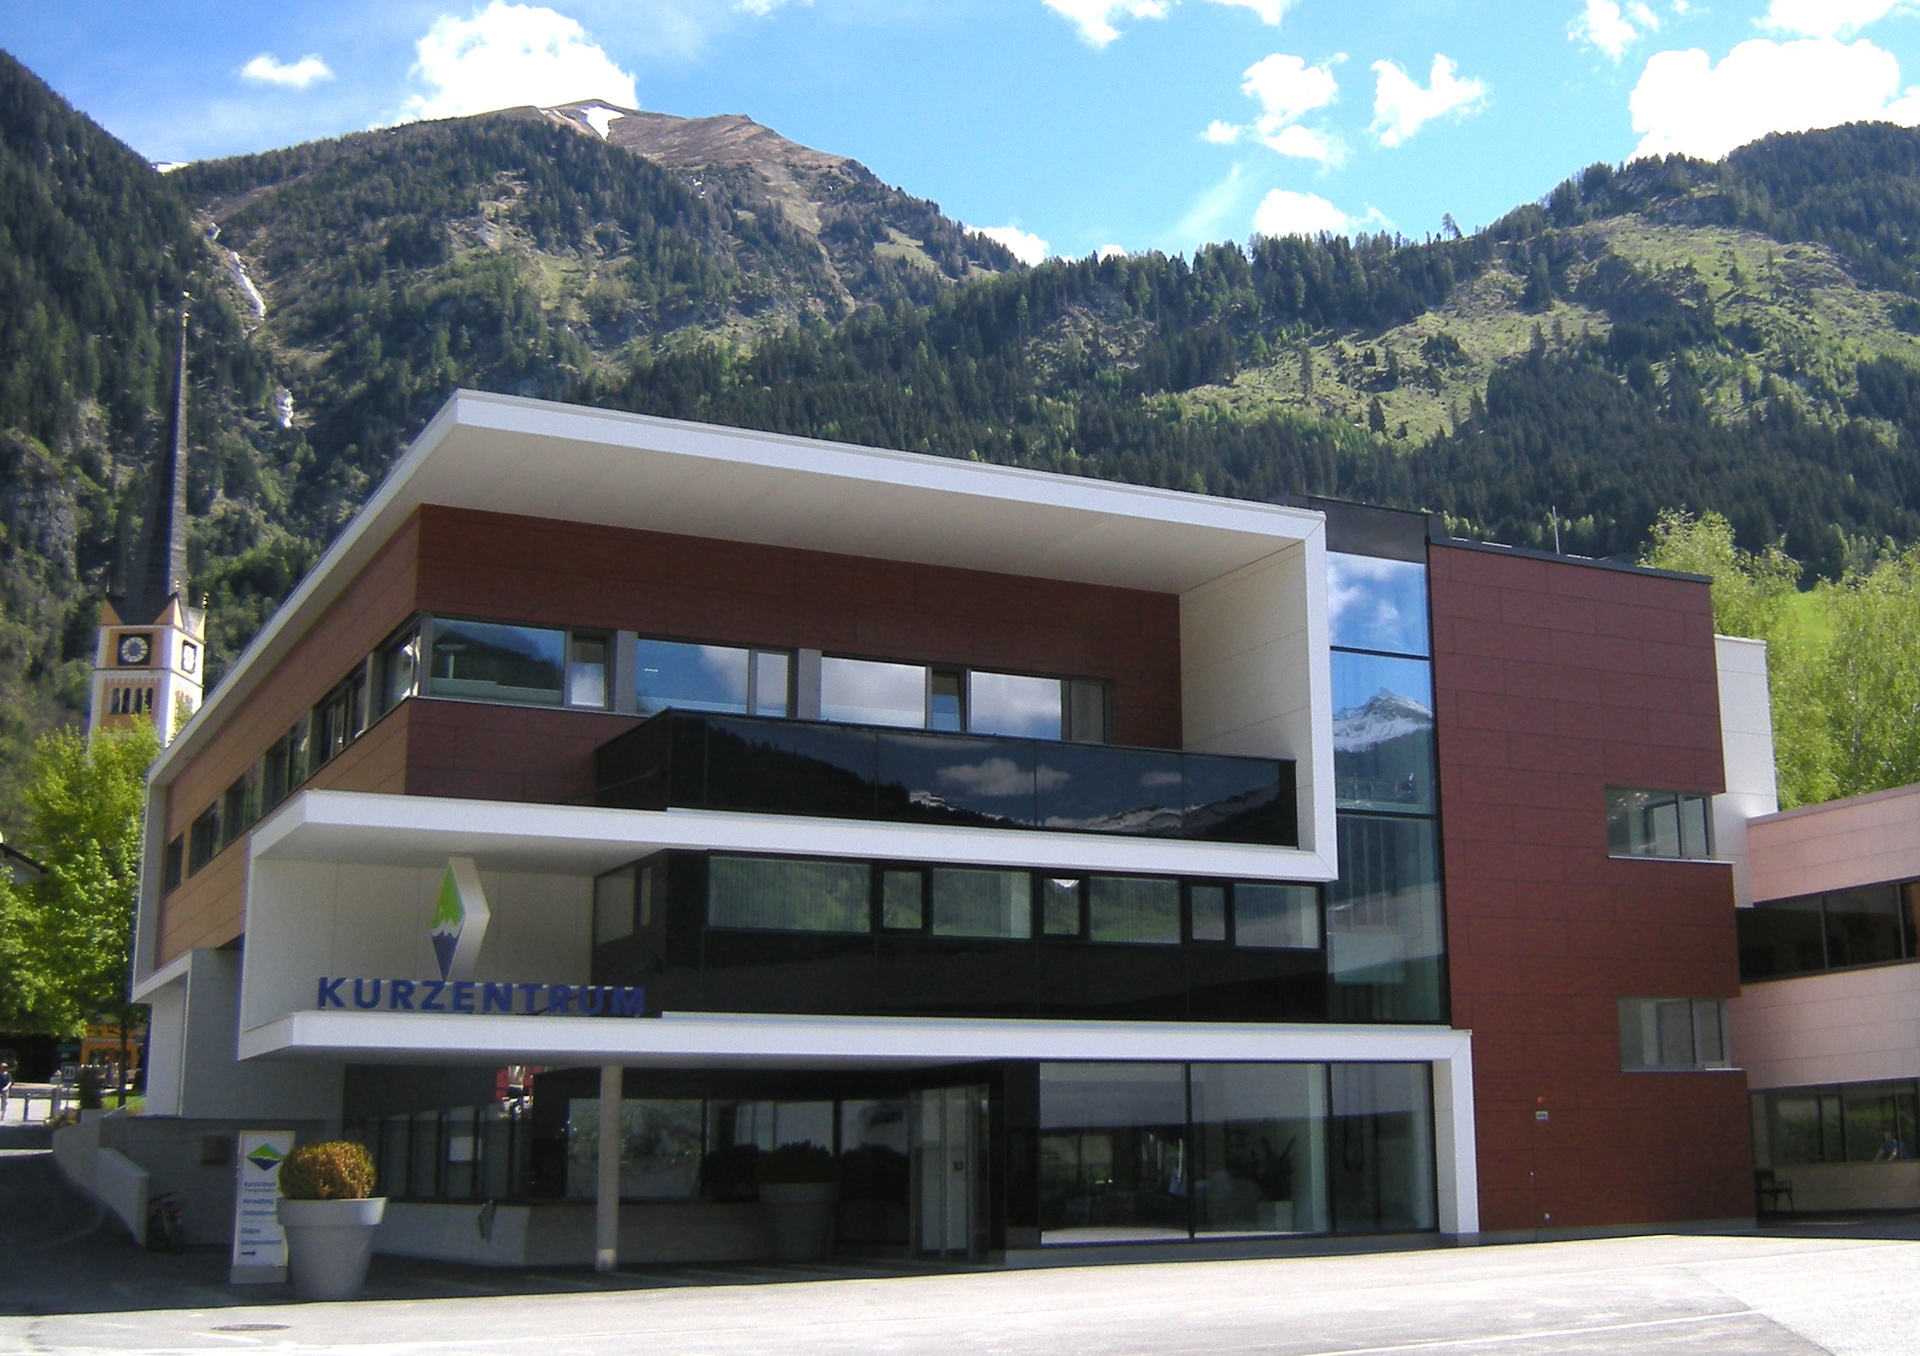 Kurzentrum Bad Hofgastein